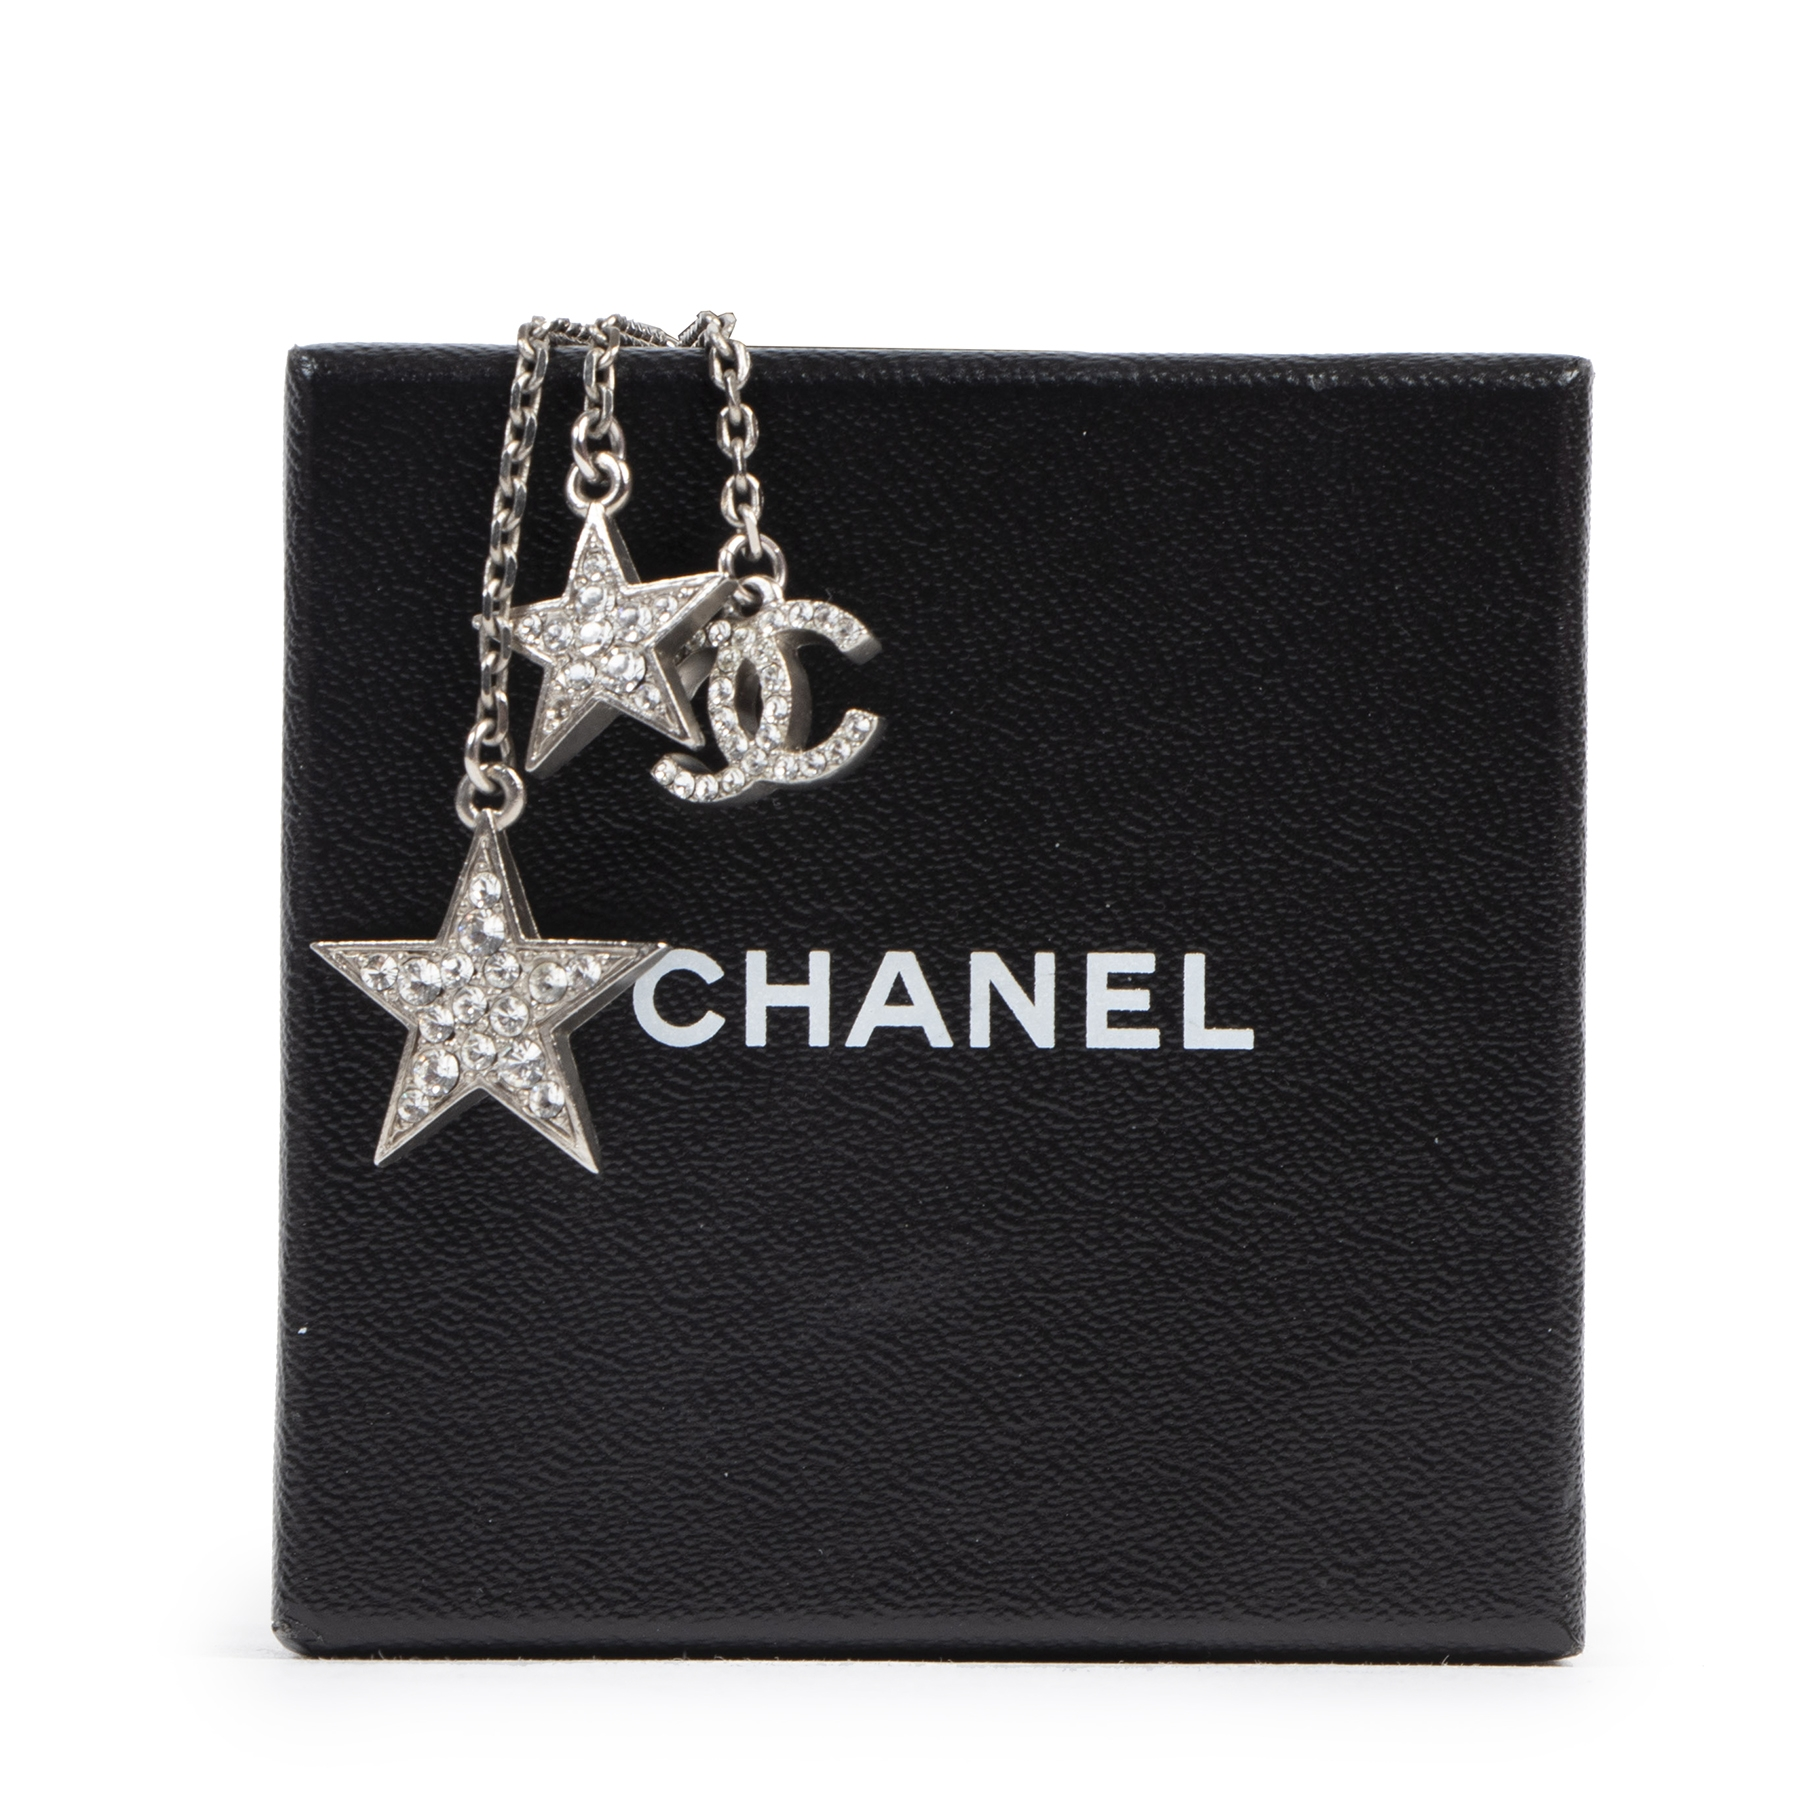 Authentic secondhand Chanel Silver Crystal Star CC Pendant Necklace designer accessories jewelry luxury vintage webshop fashion